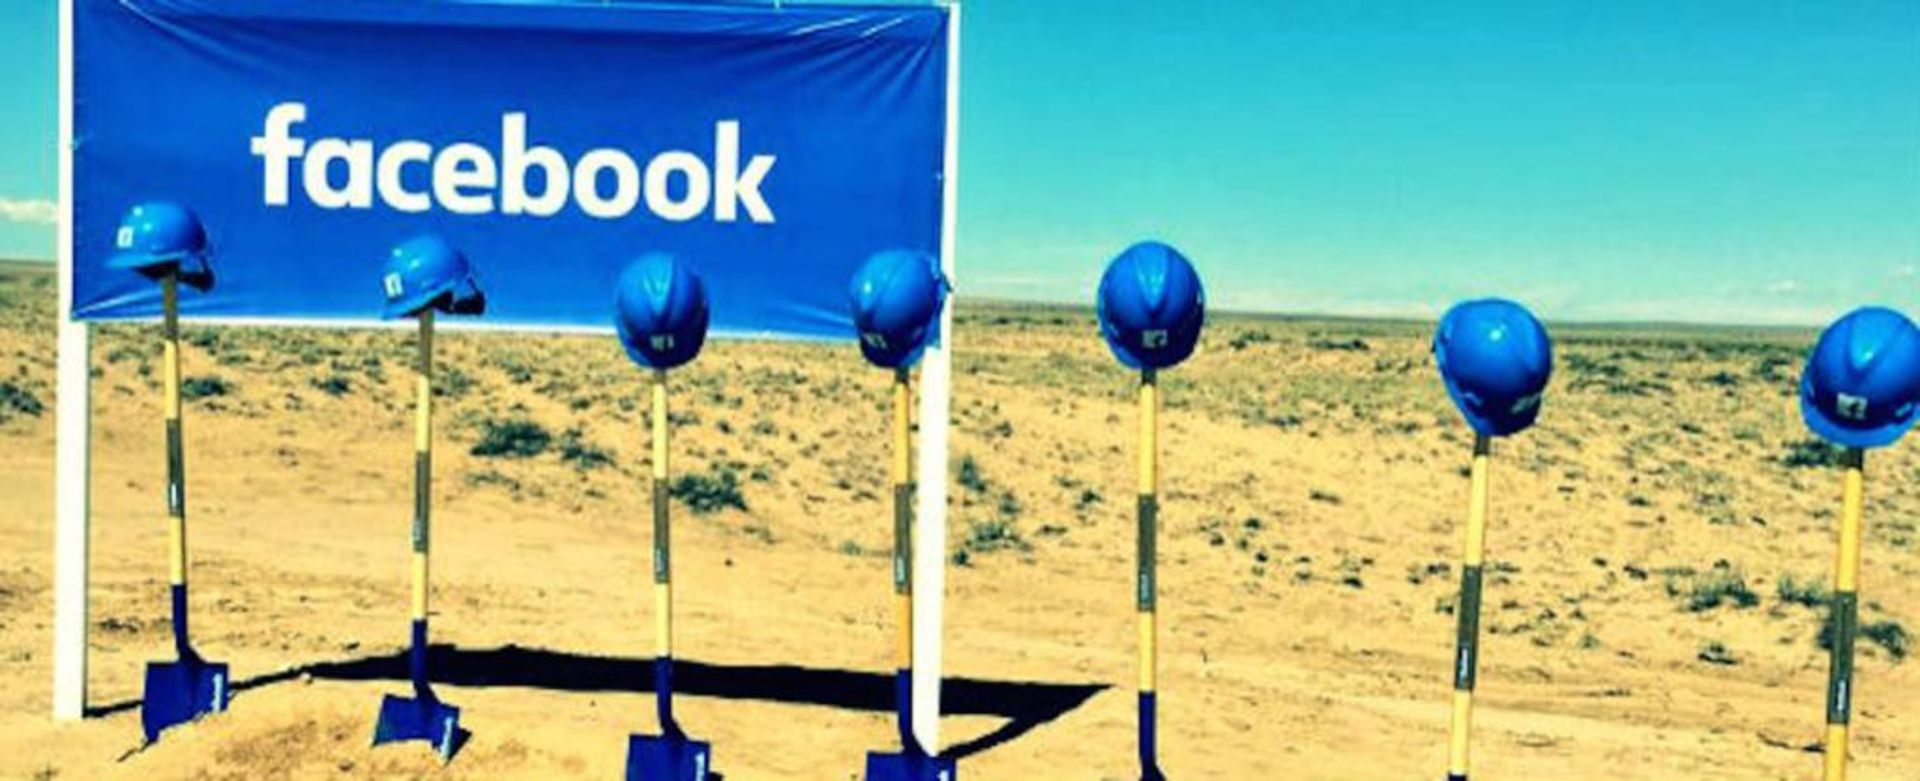 20-Lot Package - Tremendous Investment Upside near Facebook's New Data Center - FINANCING GUARANTEED - Image 2 of 5